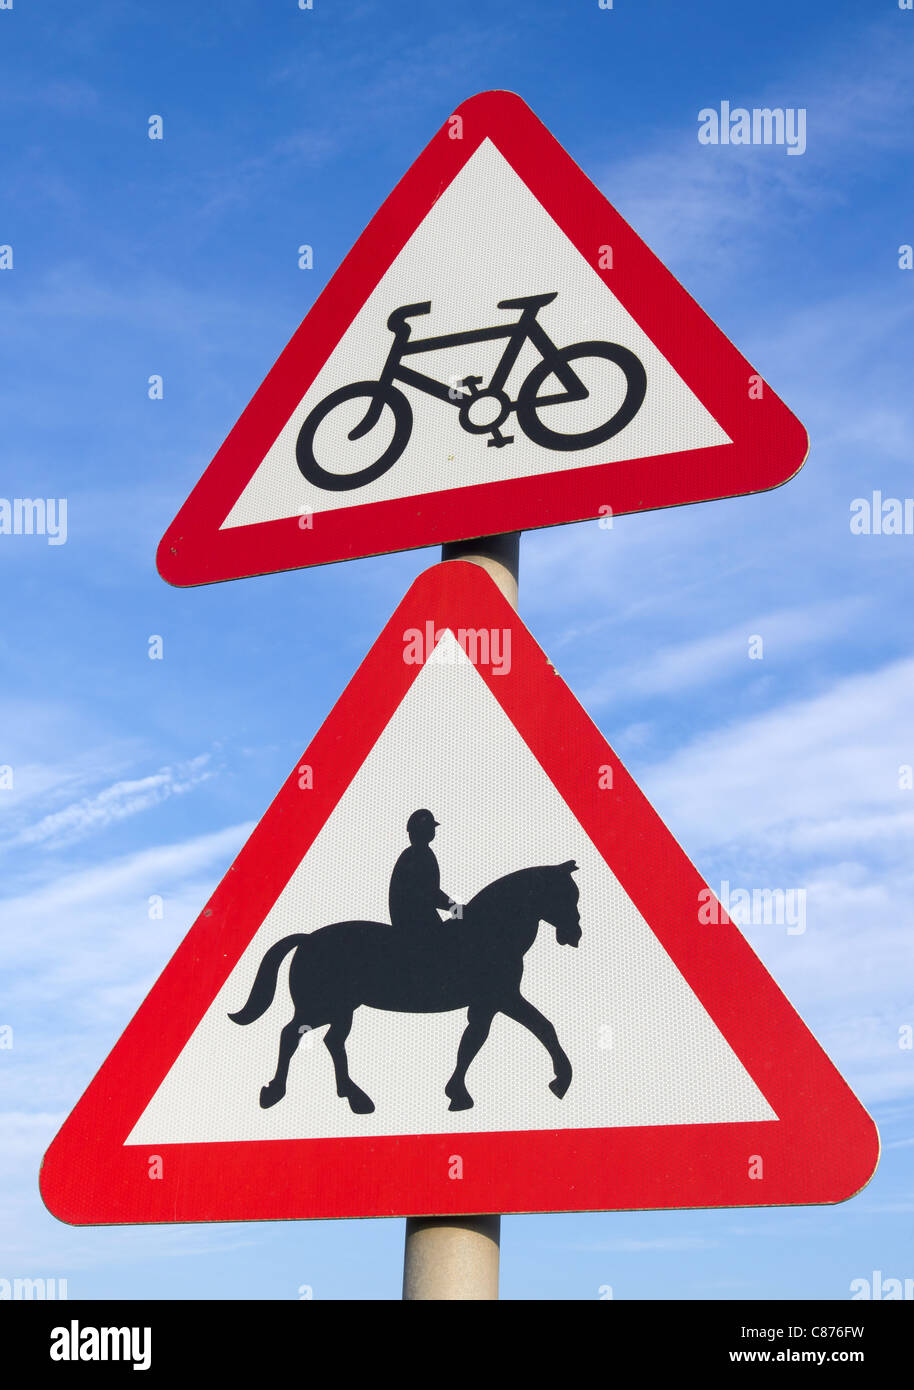 British cycle route ahead, accompanied horses or ponies, road signs. - Stock Image